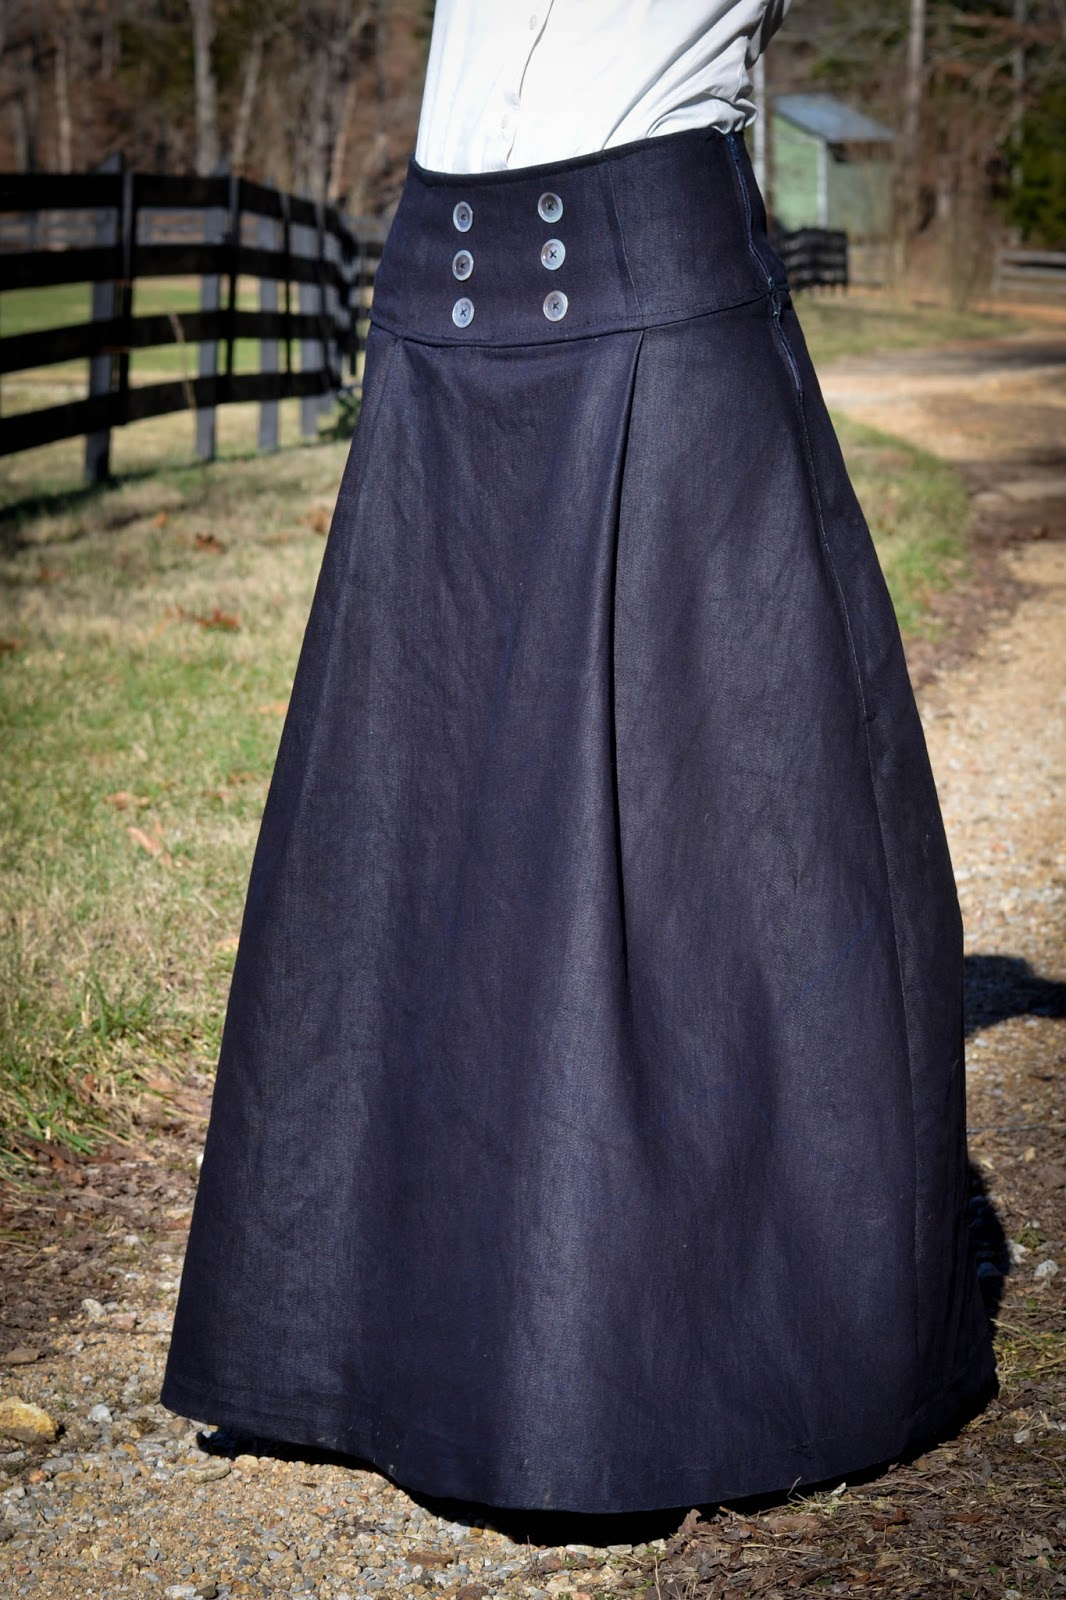 ca54e026e This skirt features a high waistband, button detail, and pleated, but  flattering, skirt front.